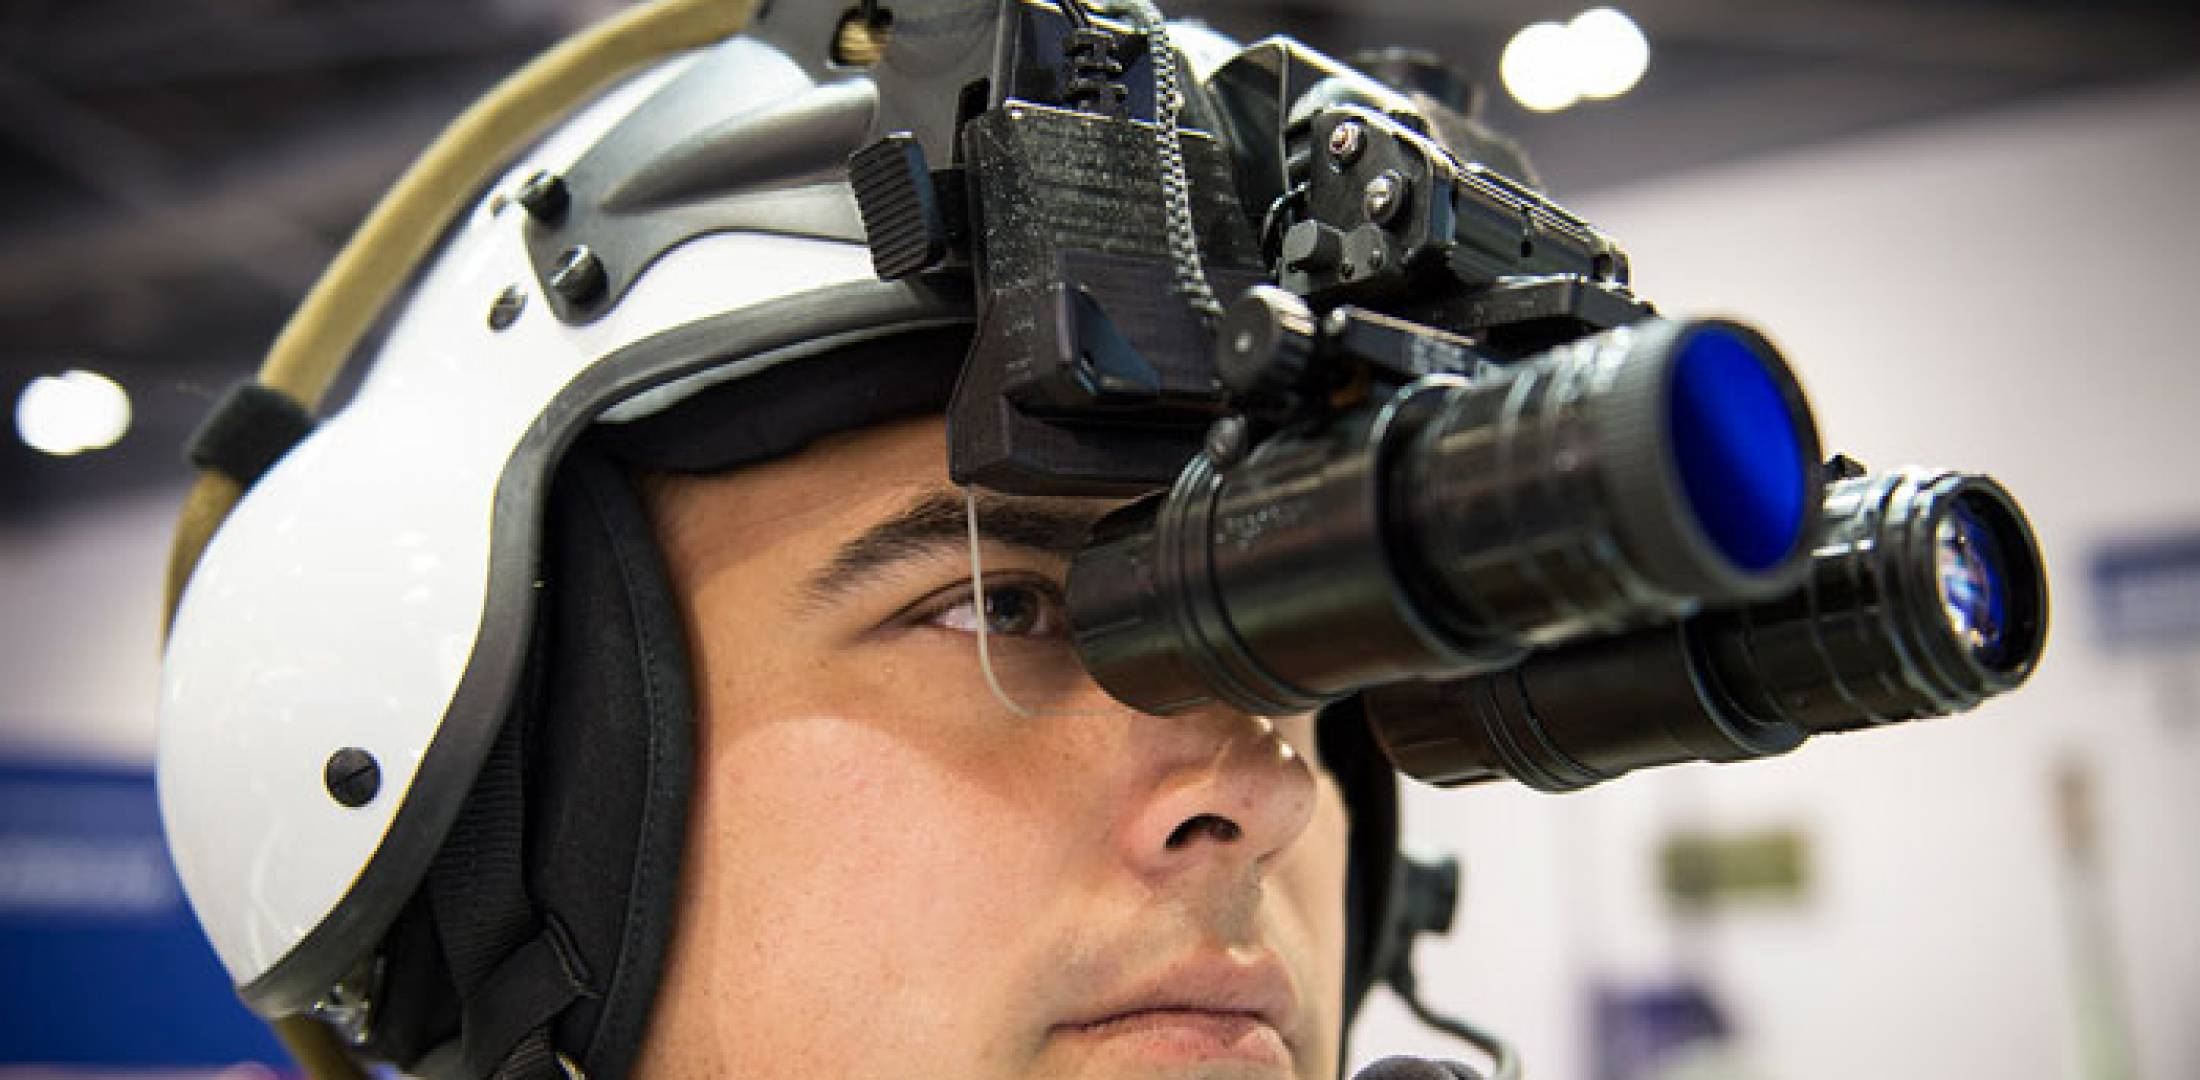 Thales Helmet Sight To Be Sole-Source on Airbus Helicopters